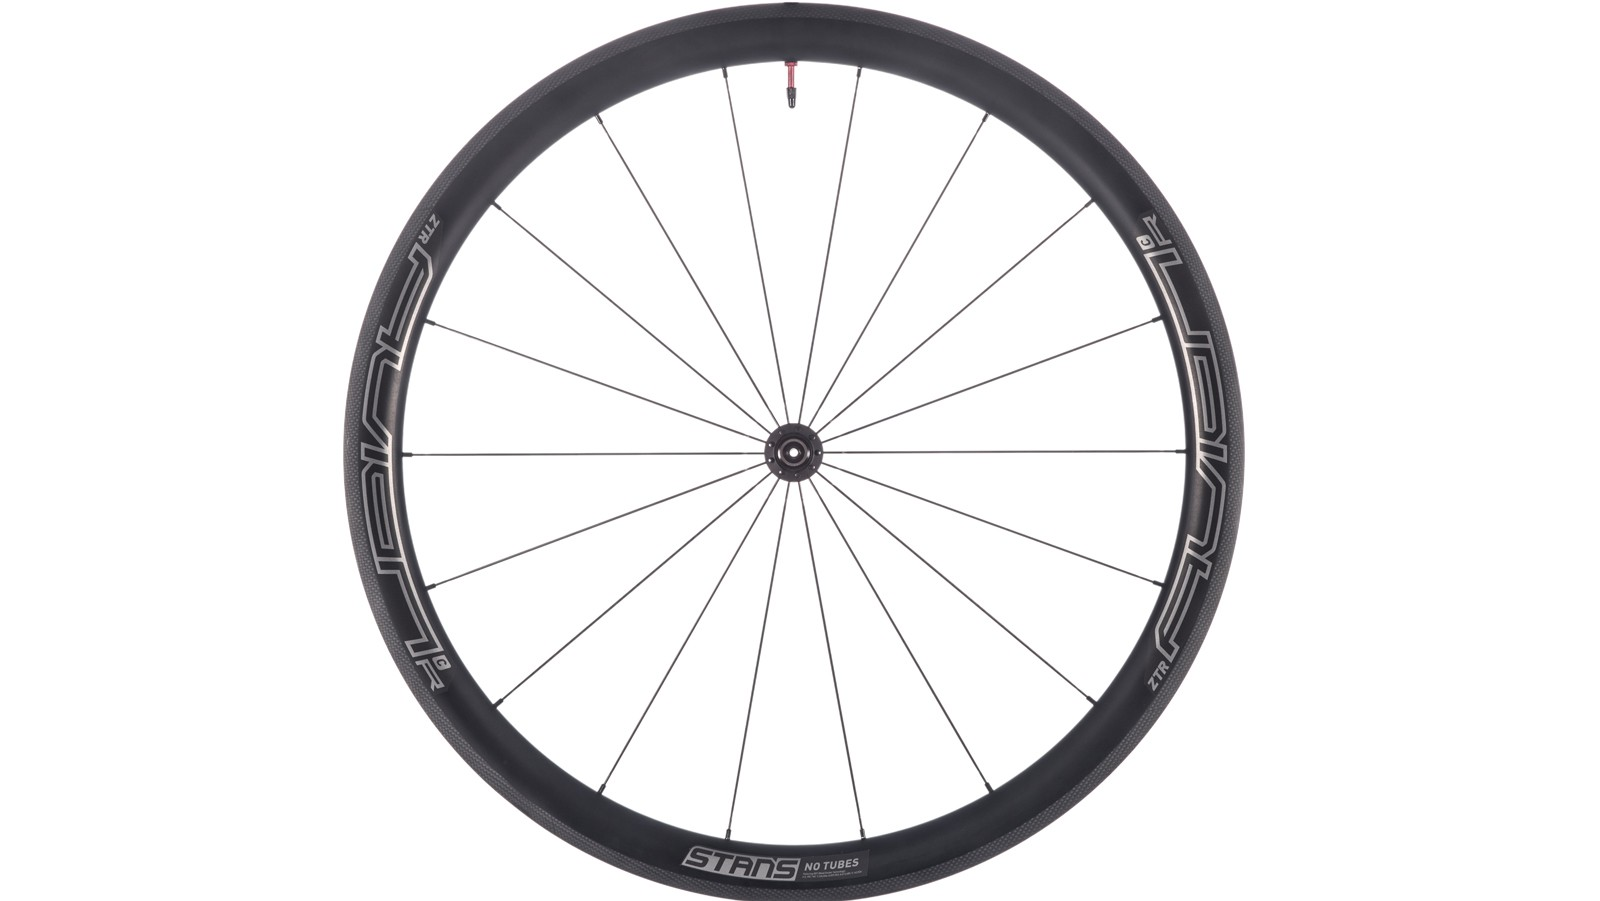 Stan's new Avion R Pro wheels add a high-temperature brake track said to deliver consistent and predictable braking